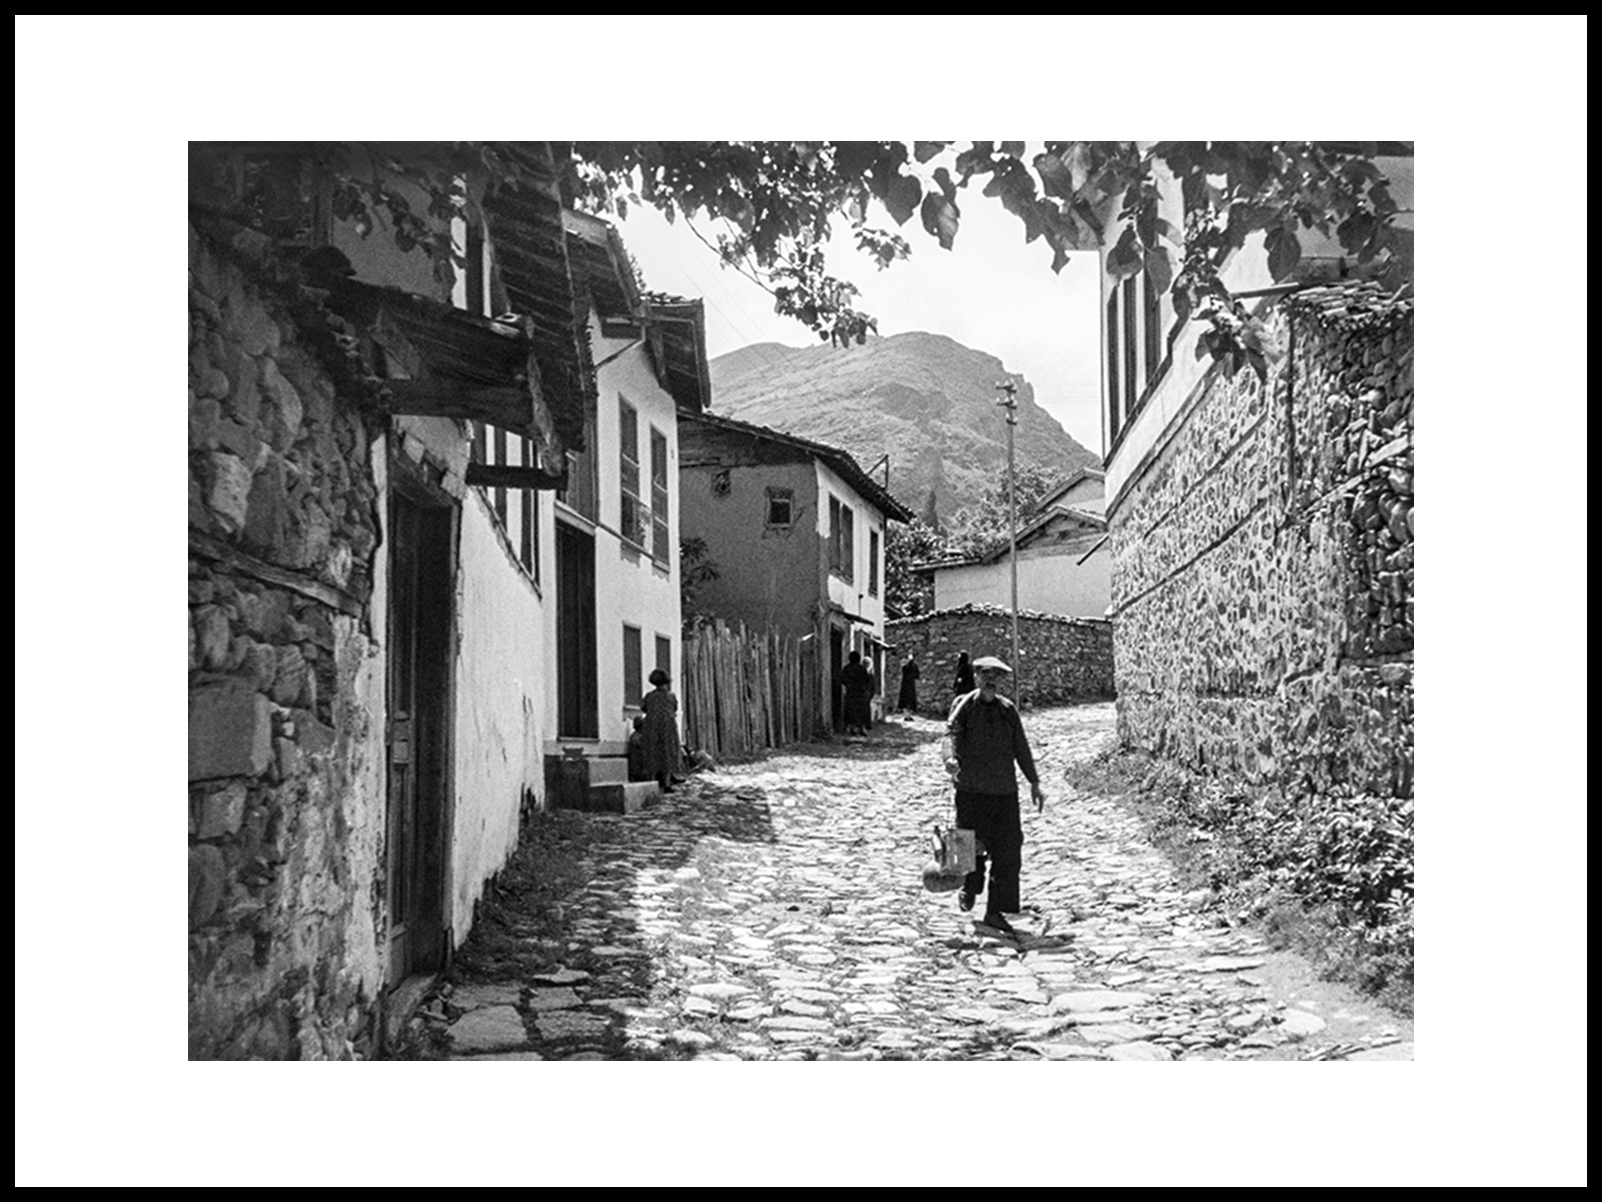 Backstreets In Turkey, 1950's